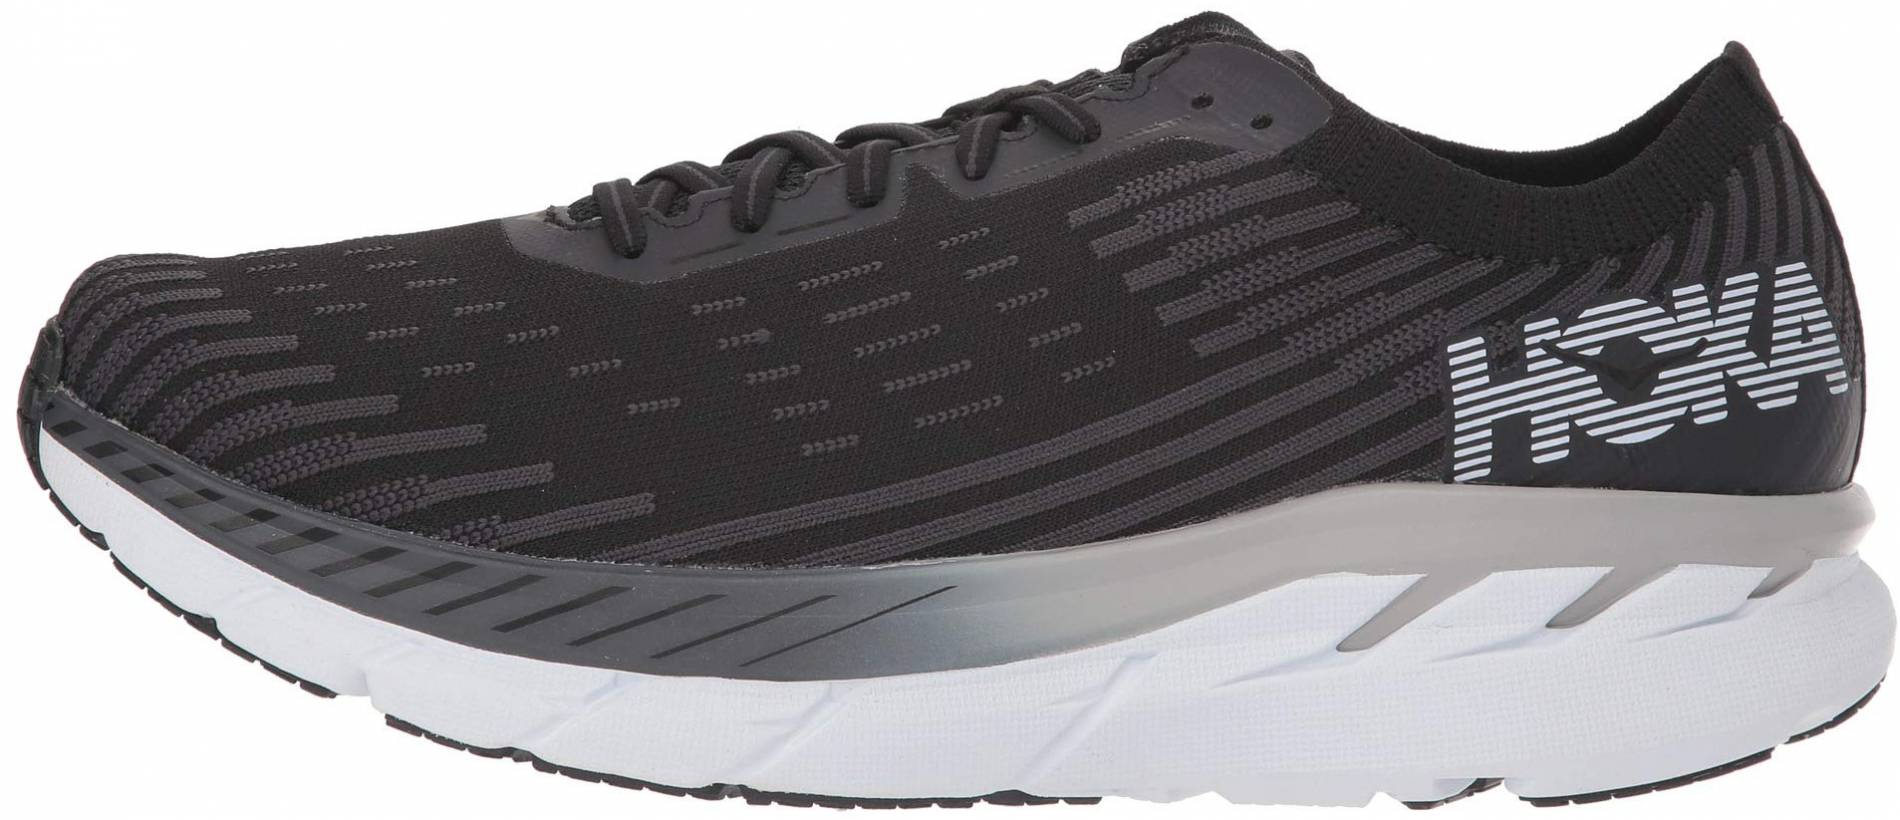 Only 120 Buy Hoka One One Clifton 5 Knit Runrepeat